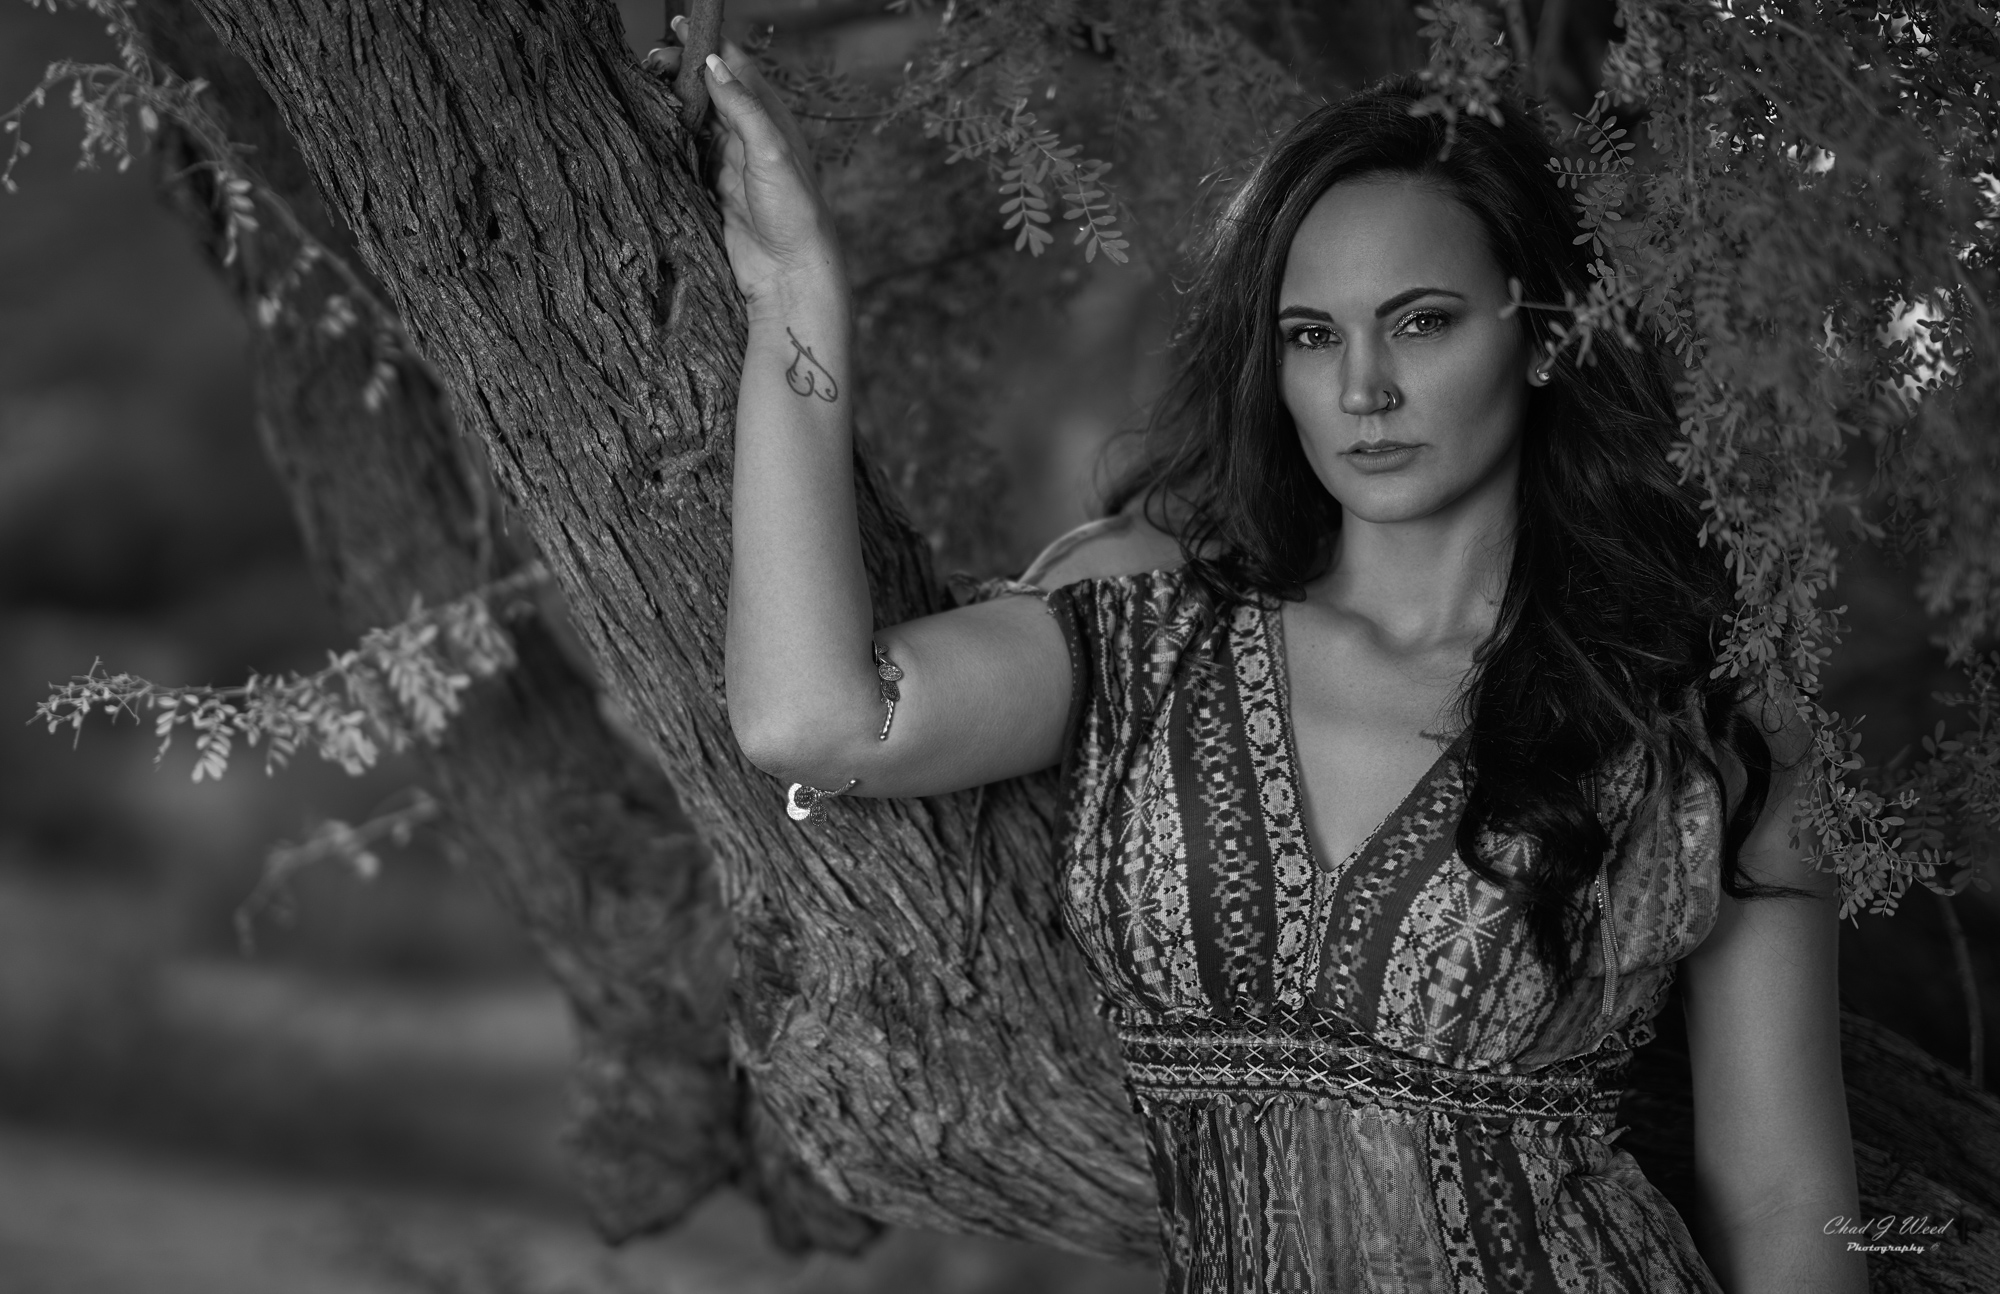 Erica's Beauty Shoot at Superstition Mountains by Mesa Arizona Portrait Photographer Chad Weed